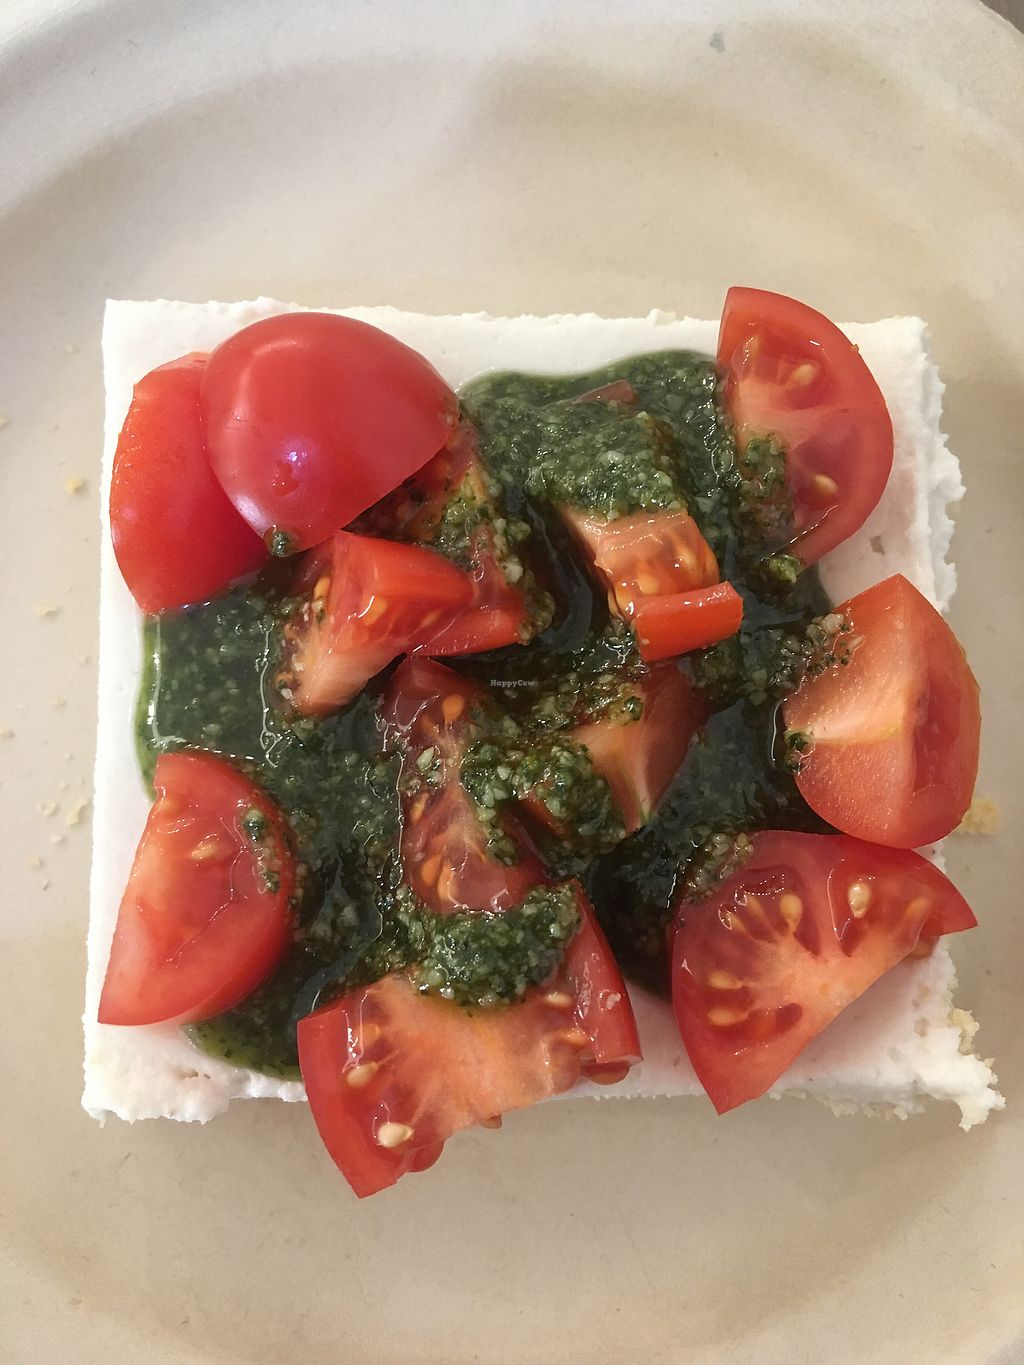 """Photo of Missfagiola  by <a href=""""/members/profile/hokusai77"""">hokusai77</a> <br/>Savoury cheesecake with taralli crust, almond and cashew cream, topped with cherry tomatoes and basil <br/> January 18, 2018  - <a href='/contact/abuse/image/104526/347968'>Report</a>"""